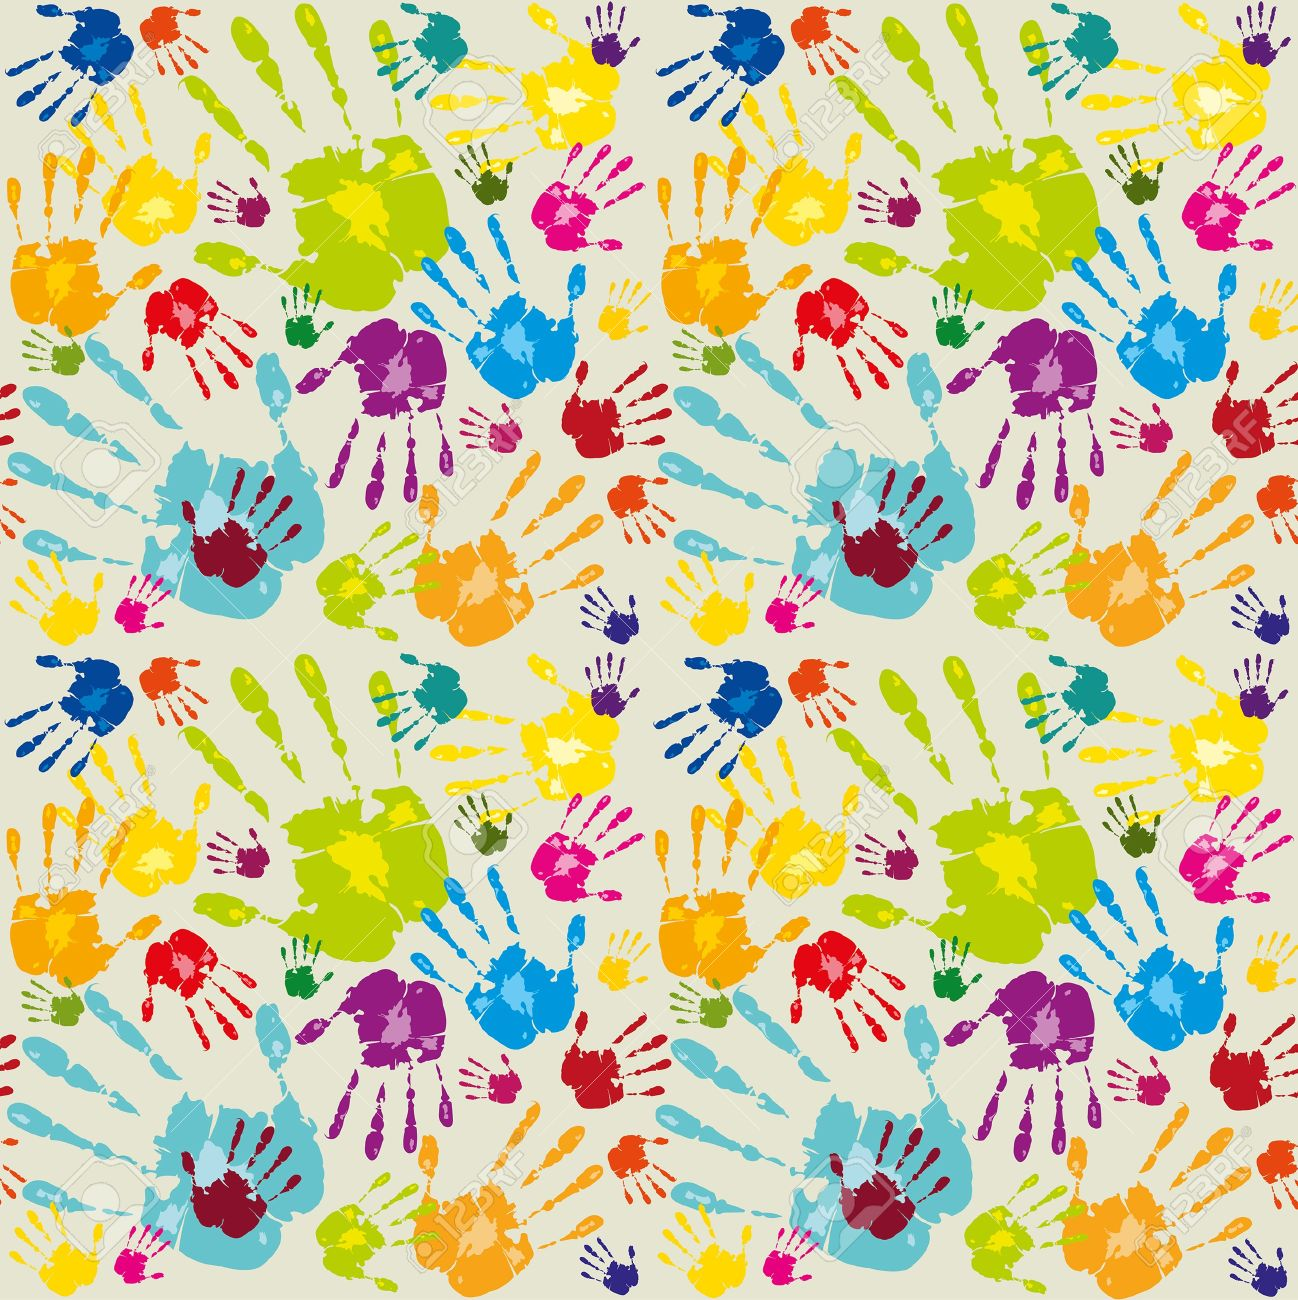 Abstract Colored Wallpaper With Hands